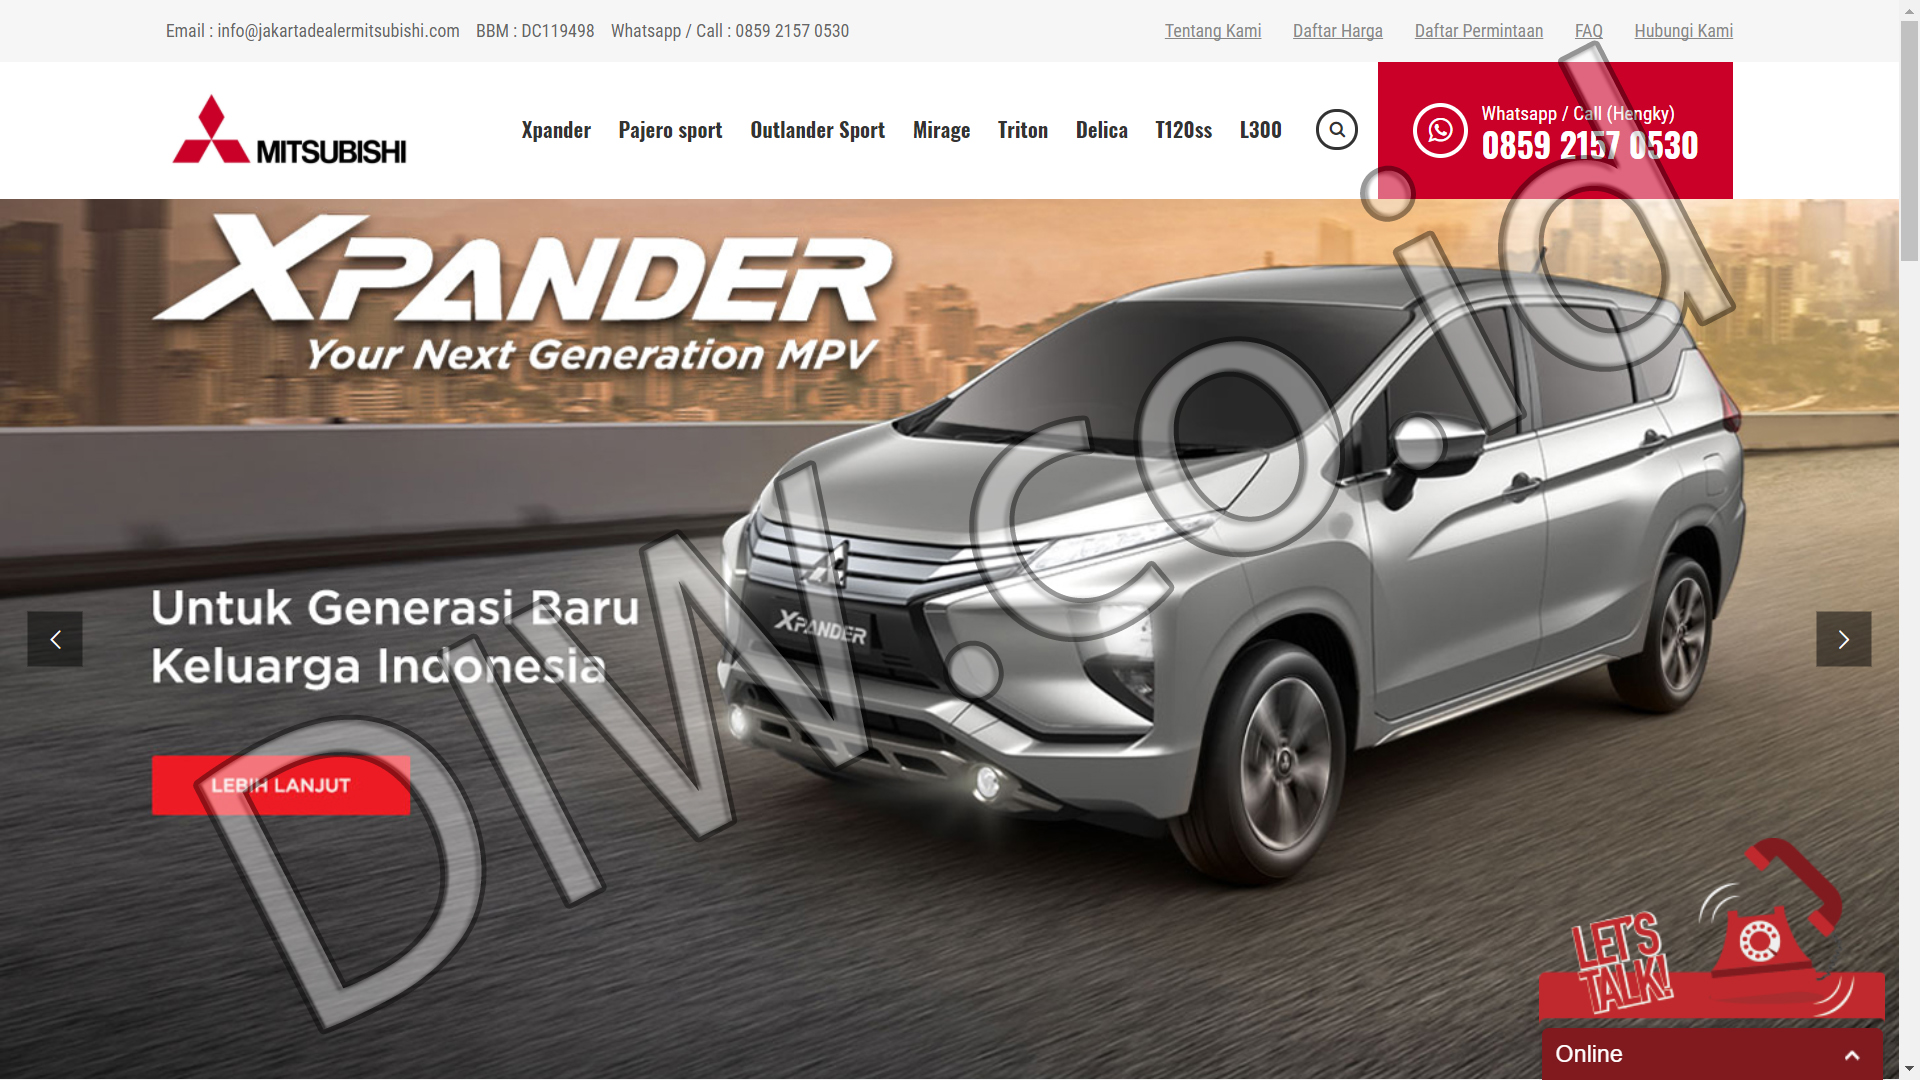 Portfolio 1 - Jakarta Dealer Mitsubishi - Andri Sunardi - Freelancer - Web Developer - CEO DIW.co.id